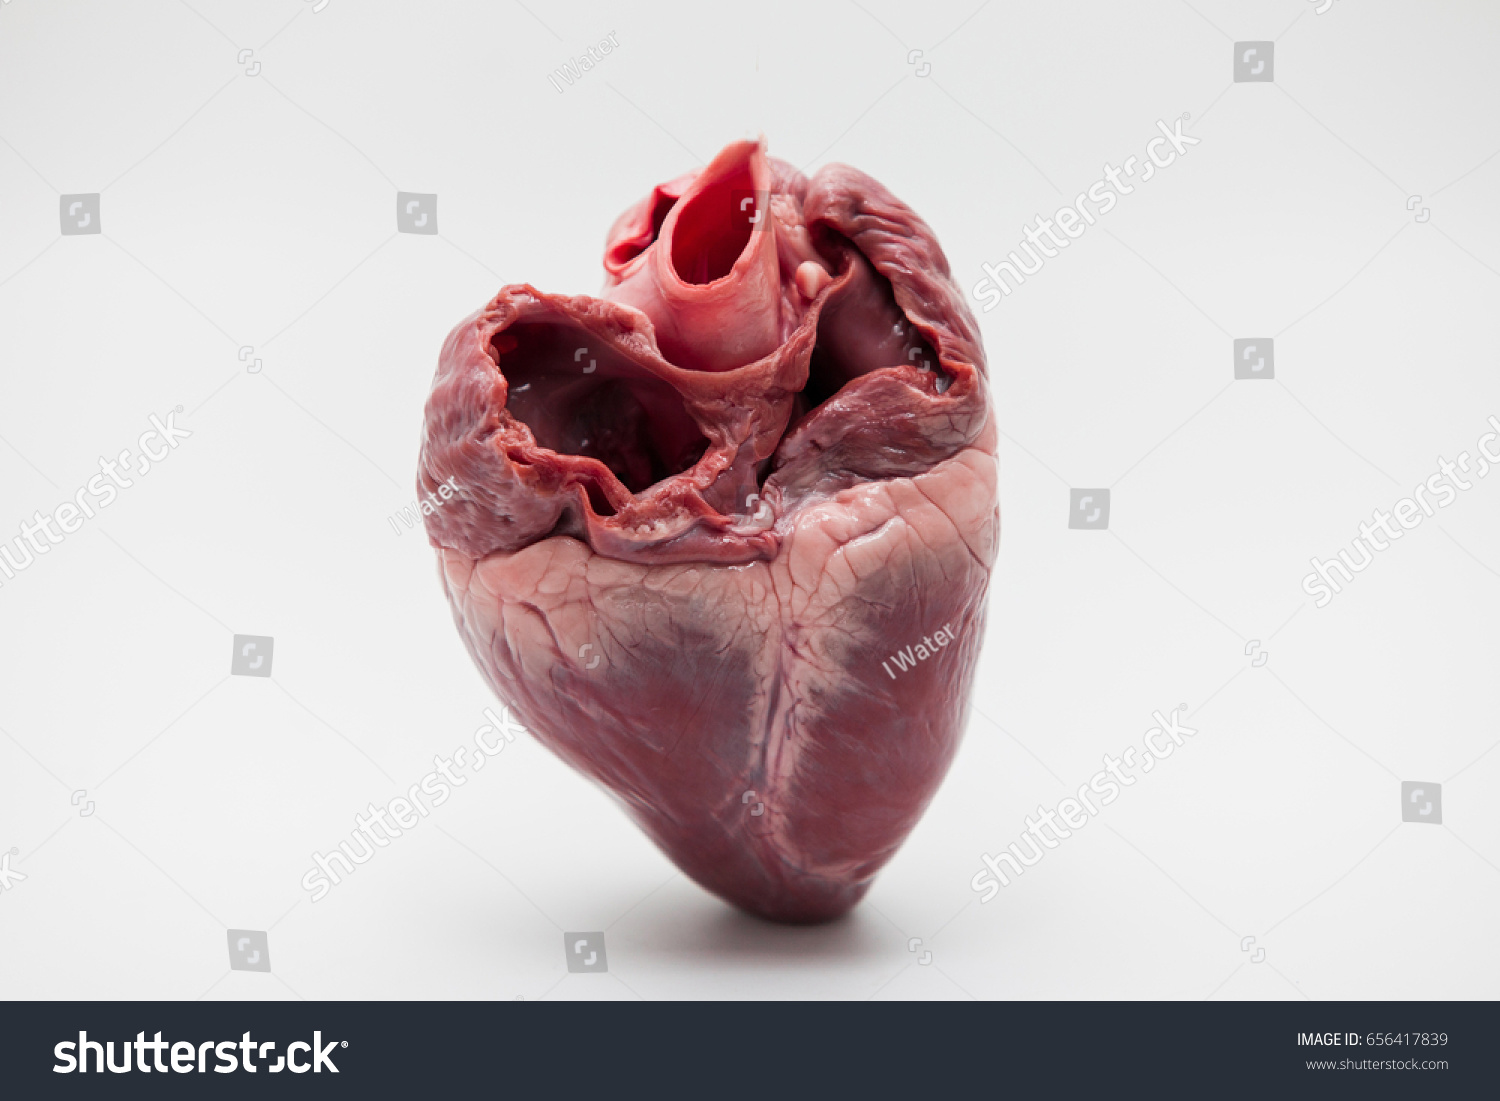 Pig Heartsraw Pig Heart Closeup Isolated Stock Photo 100 Legal